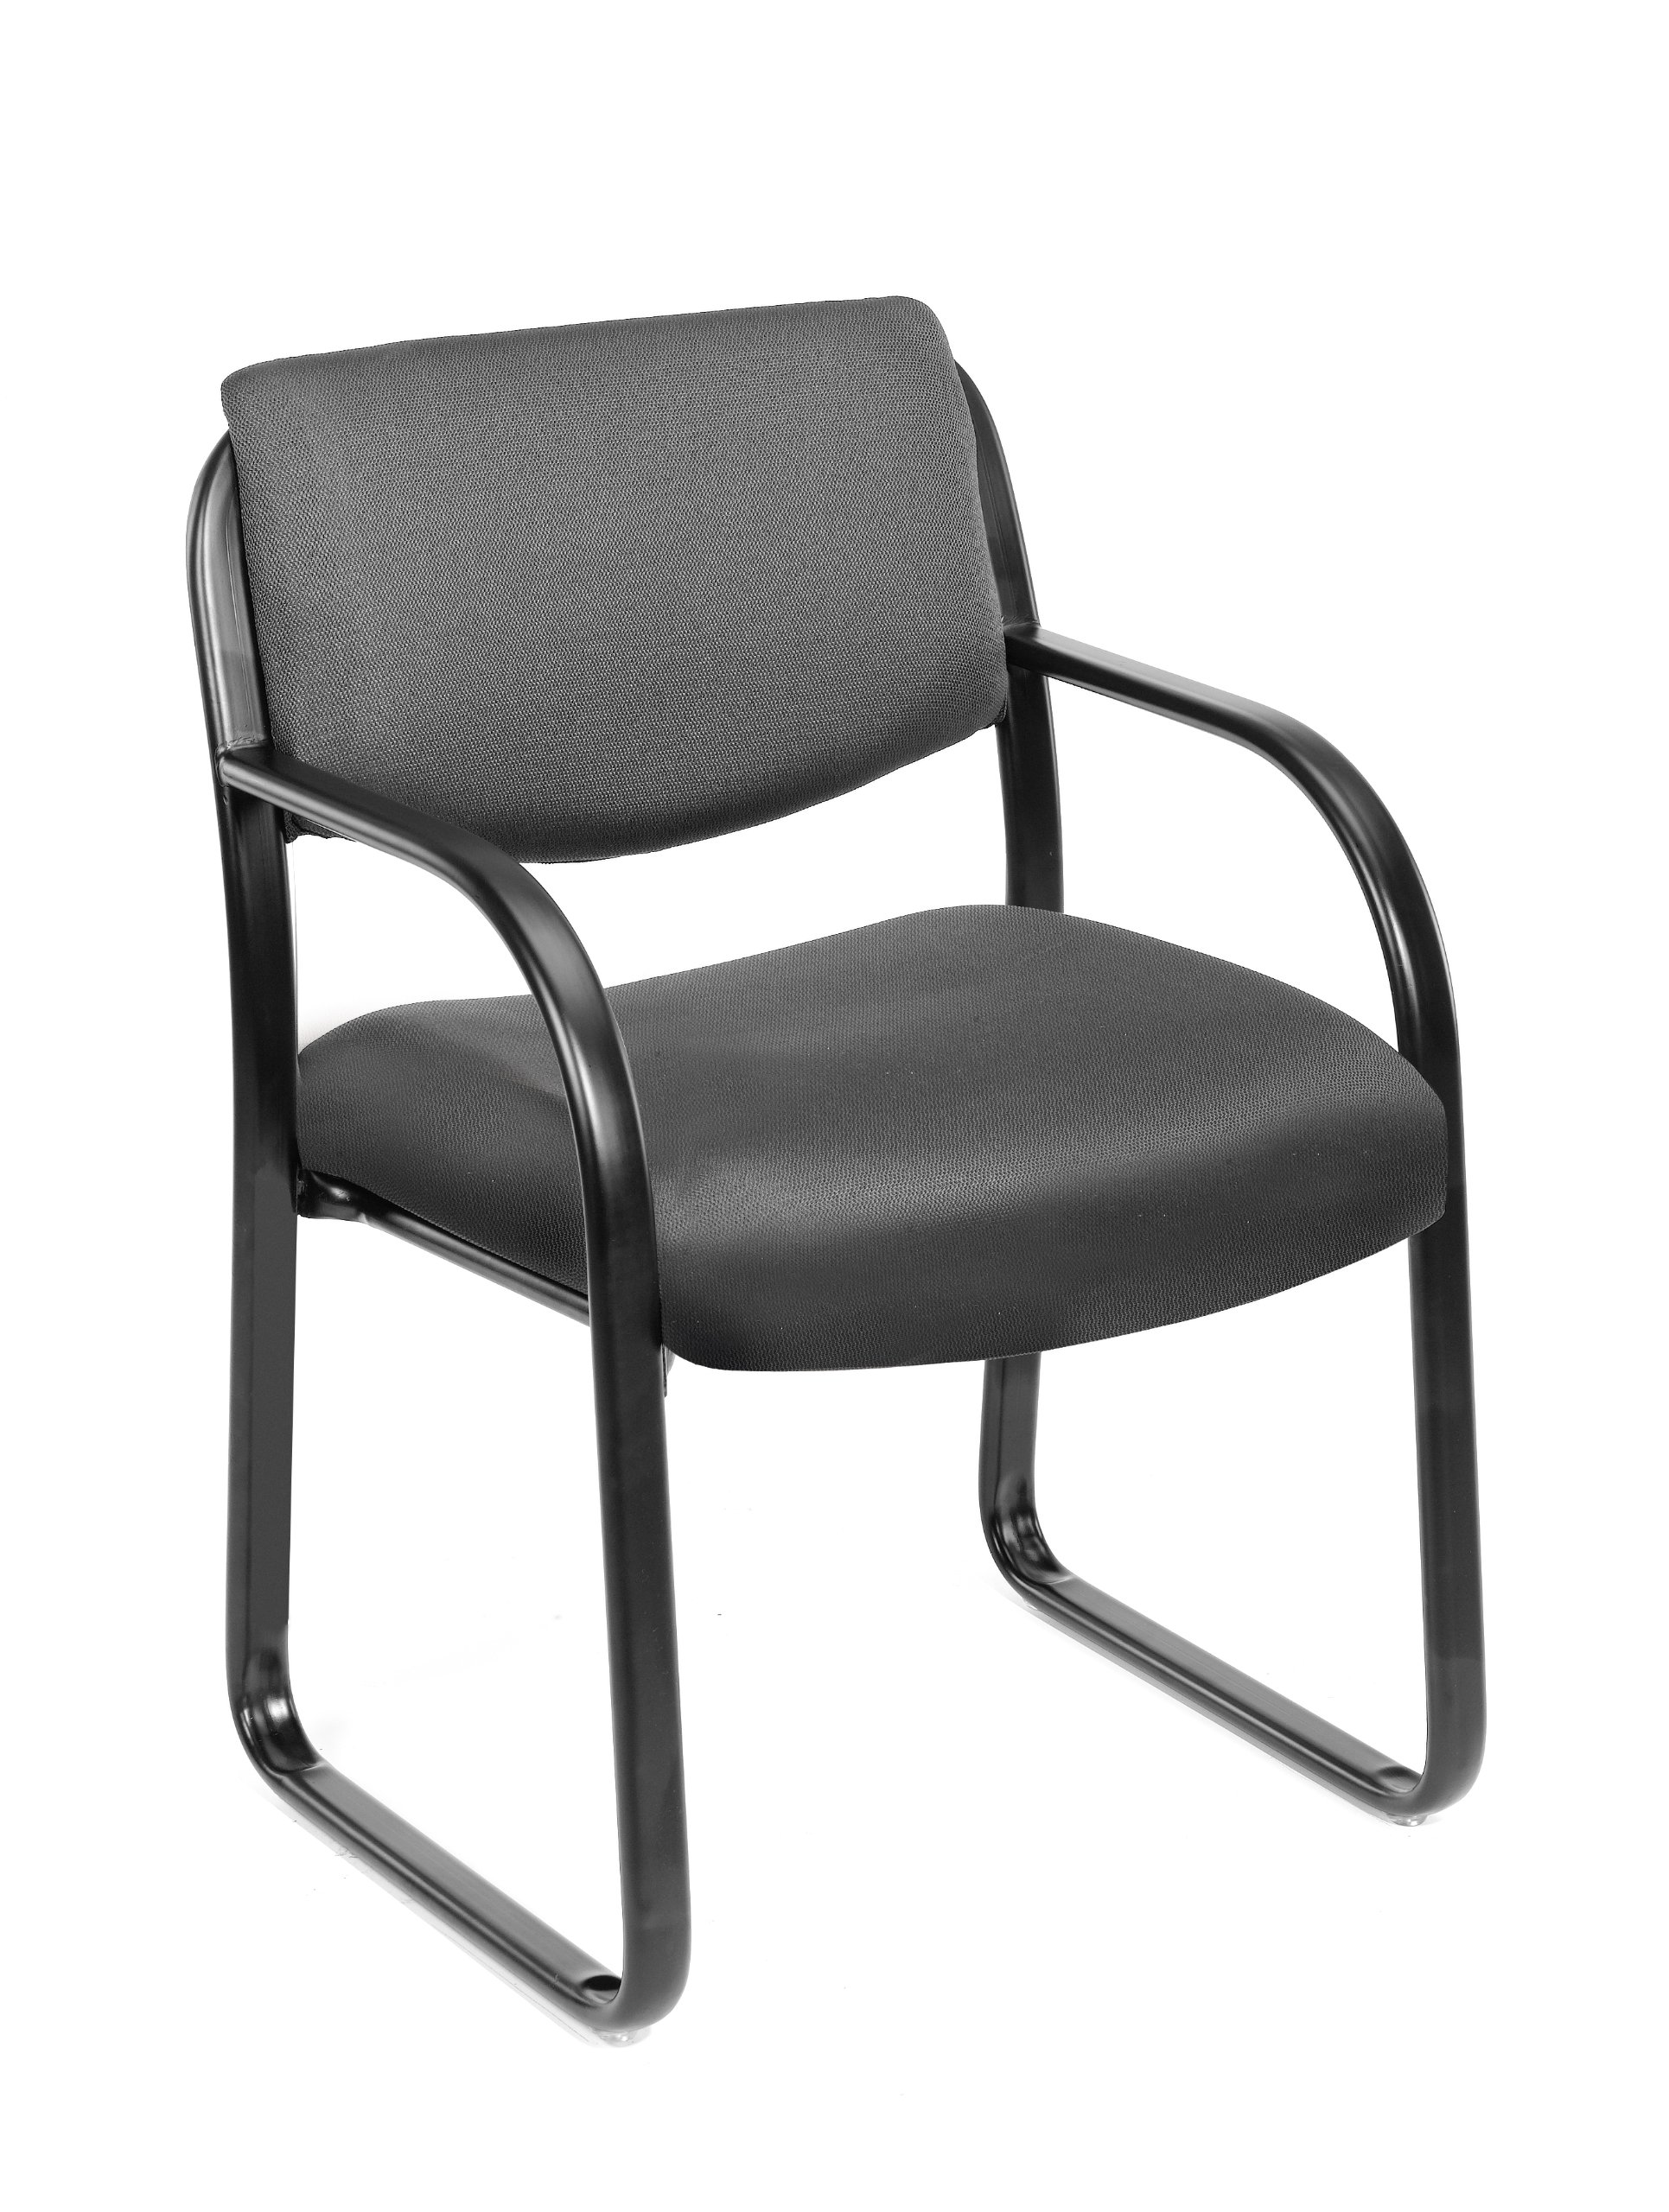 Boss Office Products B9521-GY Fabric Guest Chair in Grey by Boss Office Products